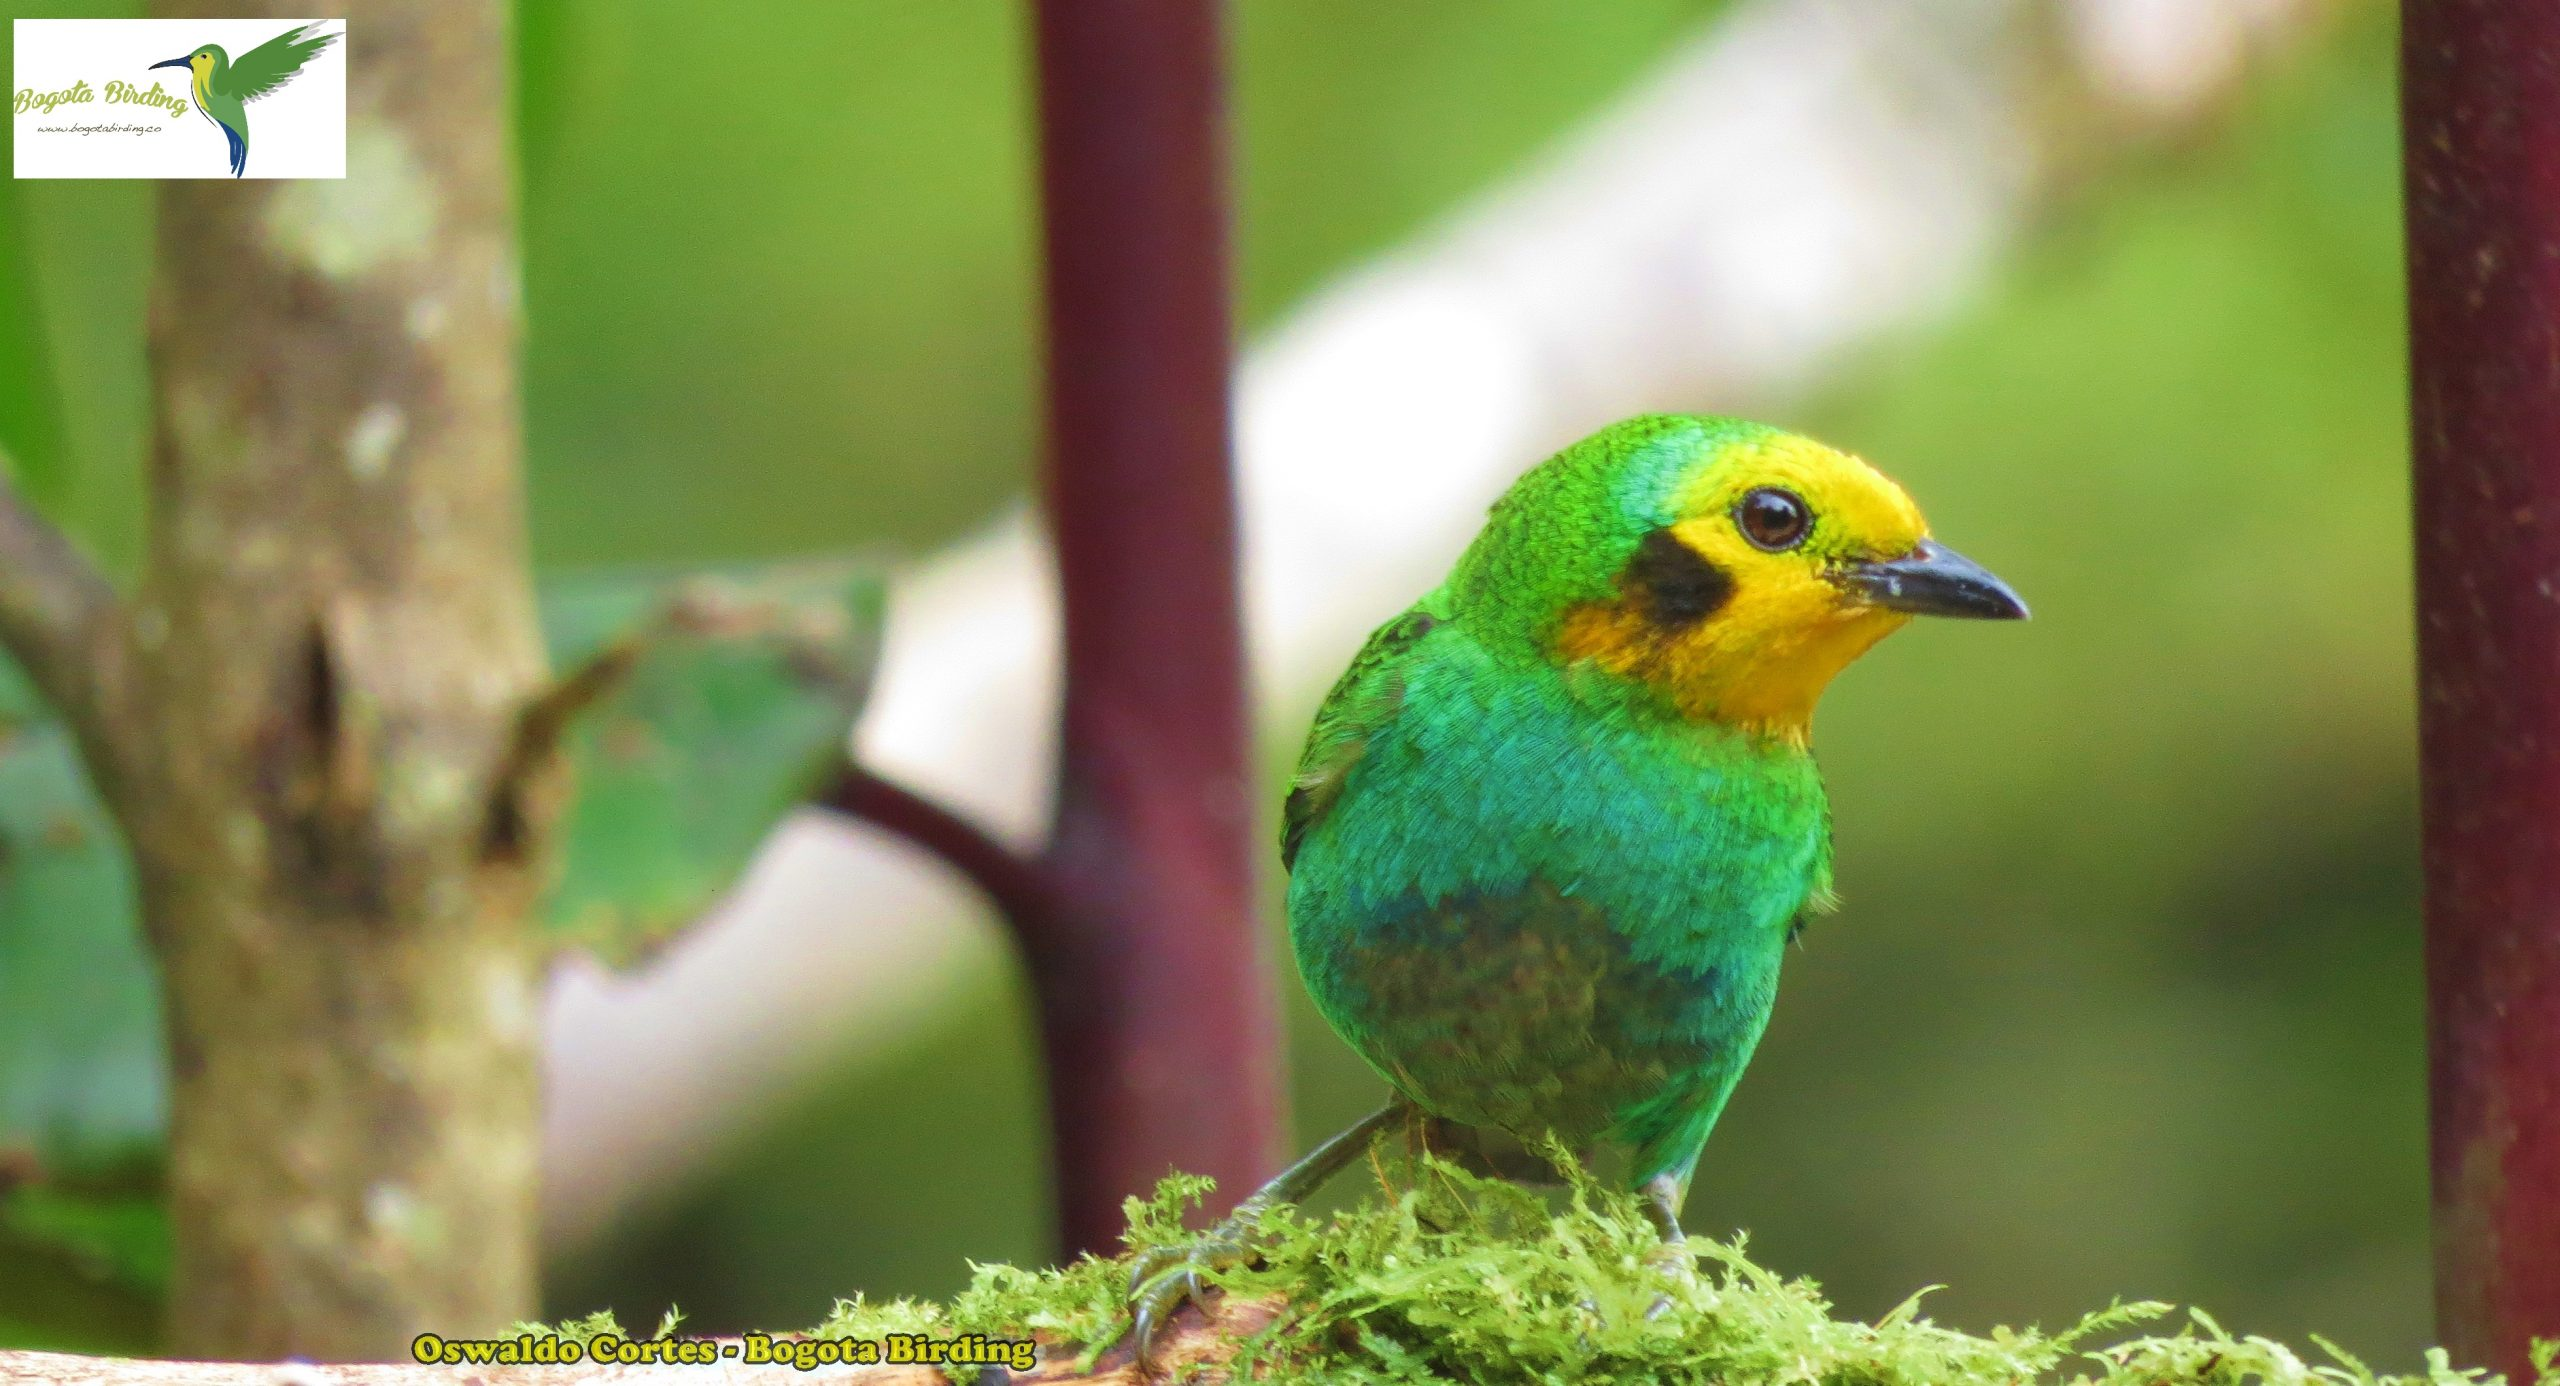 Endemic, Multicoloured Tanager, Chlorochrysa Nitidissima, Central Andes (finca La Alejandria)